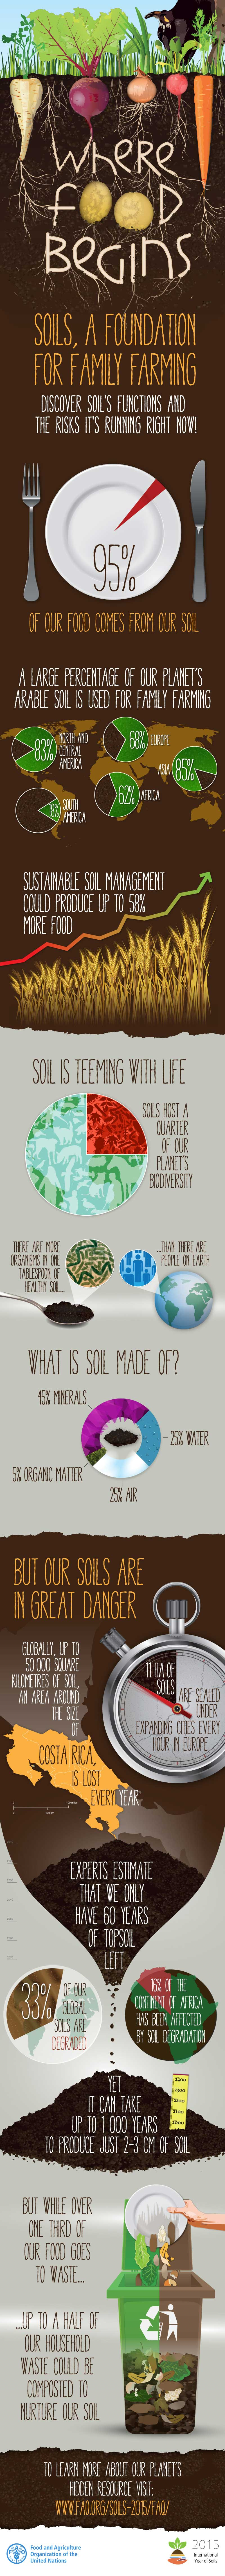 Where food begins [Infographic] | ecogreenlove